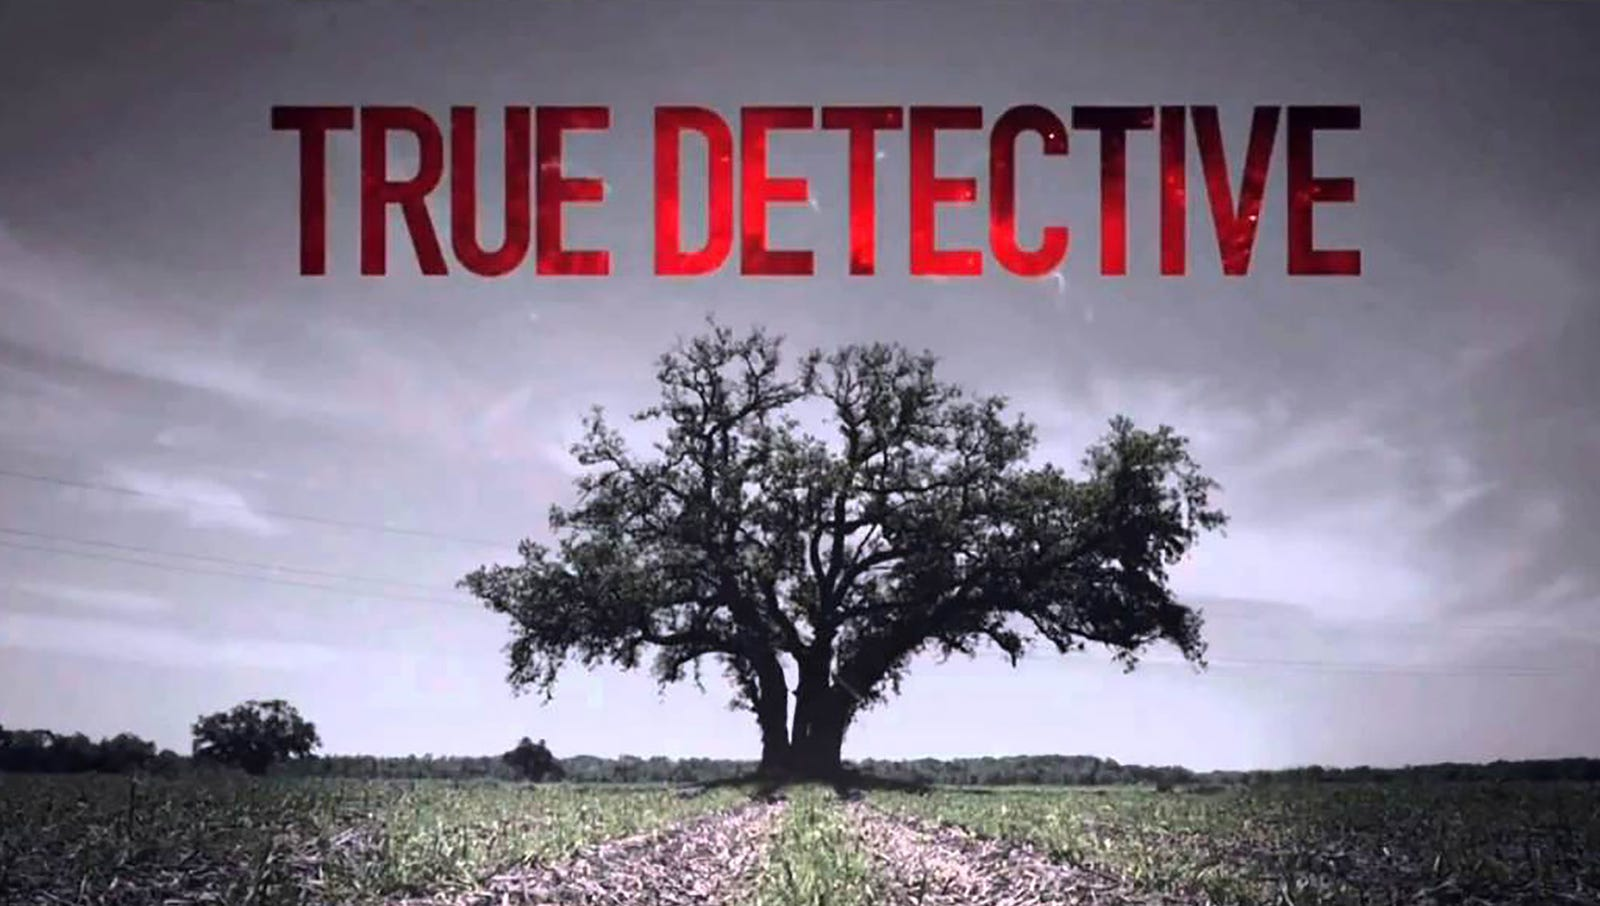 True Detective  HBO's runaway hit of the year wowed critics and audiences alike with its rich portrayal of man's basest and darkest desires to watch TV and talk about it endlessly.